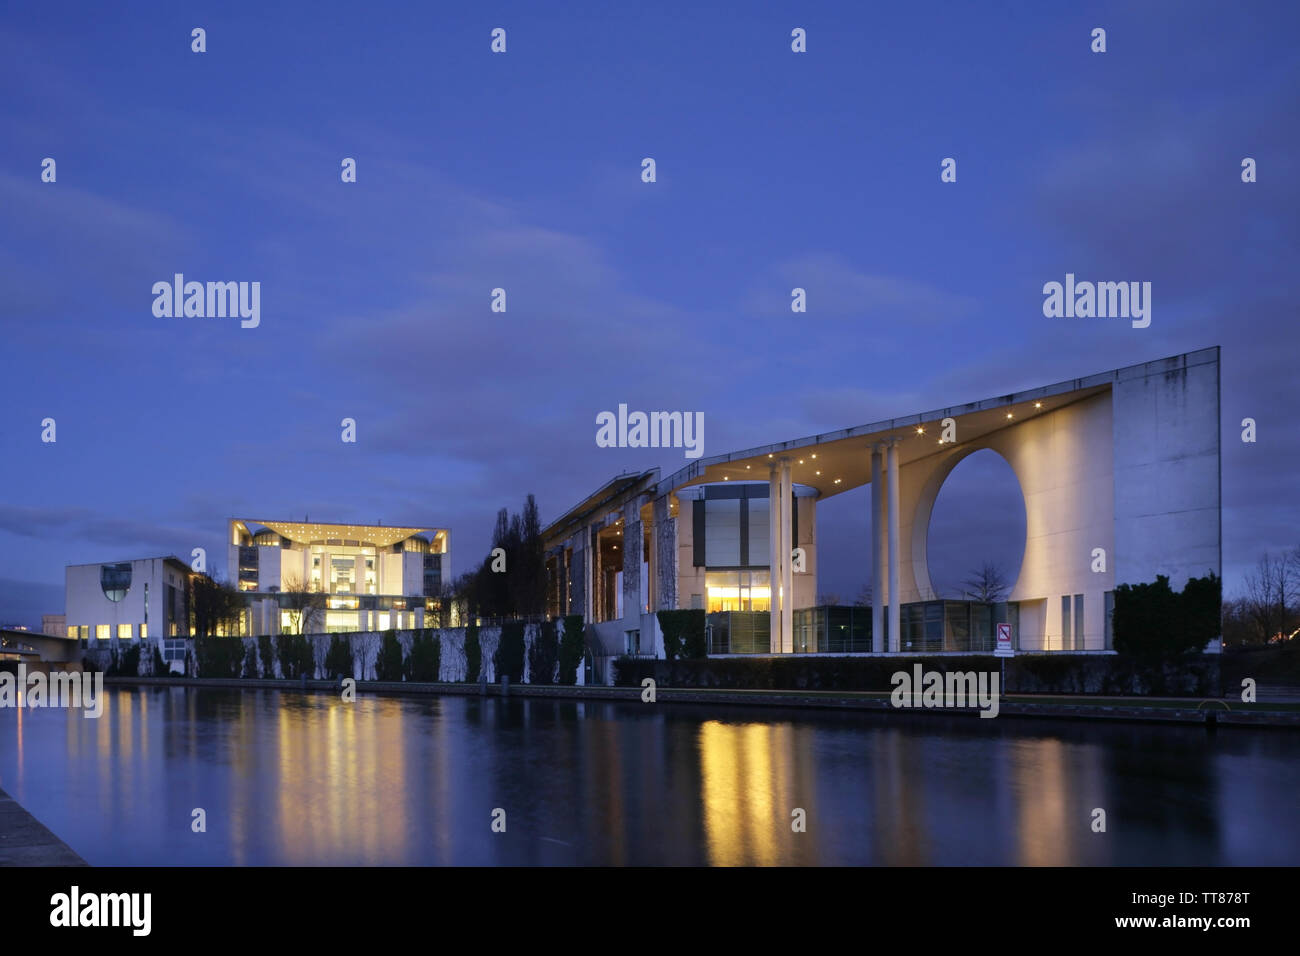 German Chancellery (Bundeskanzleramt) on the banks of the River Spree, Berlin, Germany. Stock Photo